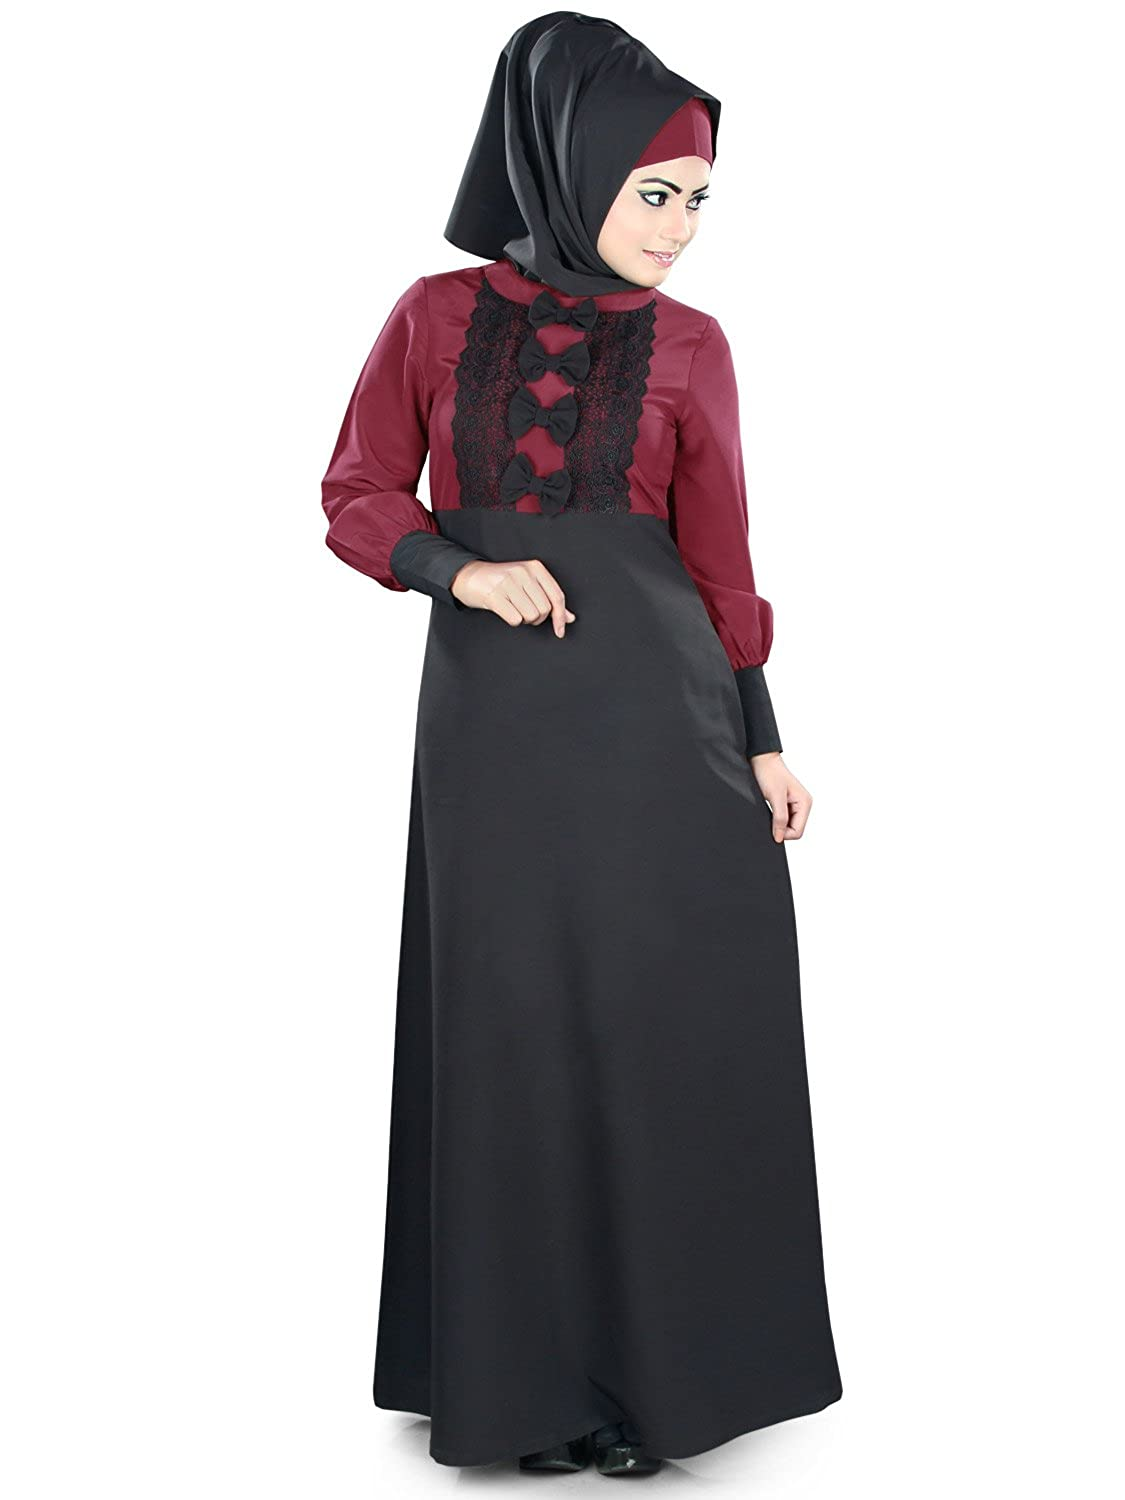 MyBatua Islamic Black & Maroon Gelegenheit & Formal Wear Burqa Abaya Jilbab AY-378